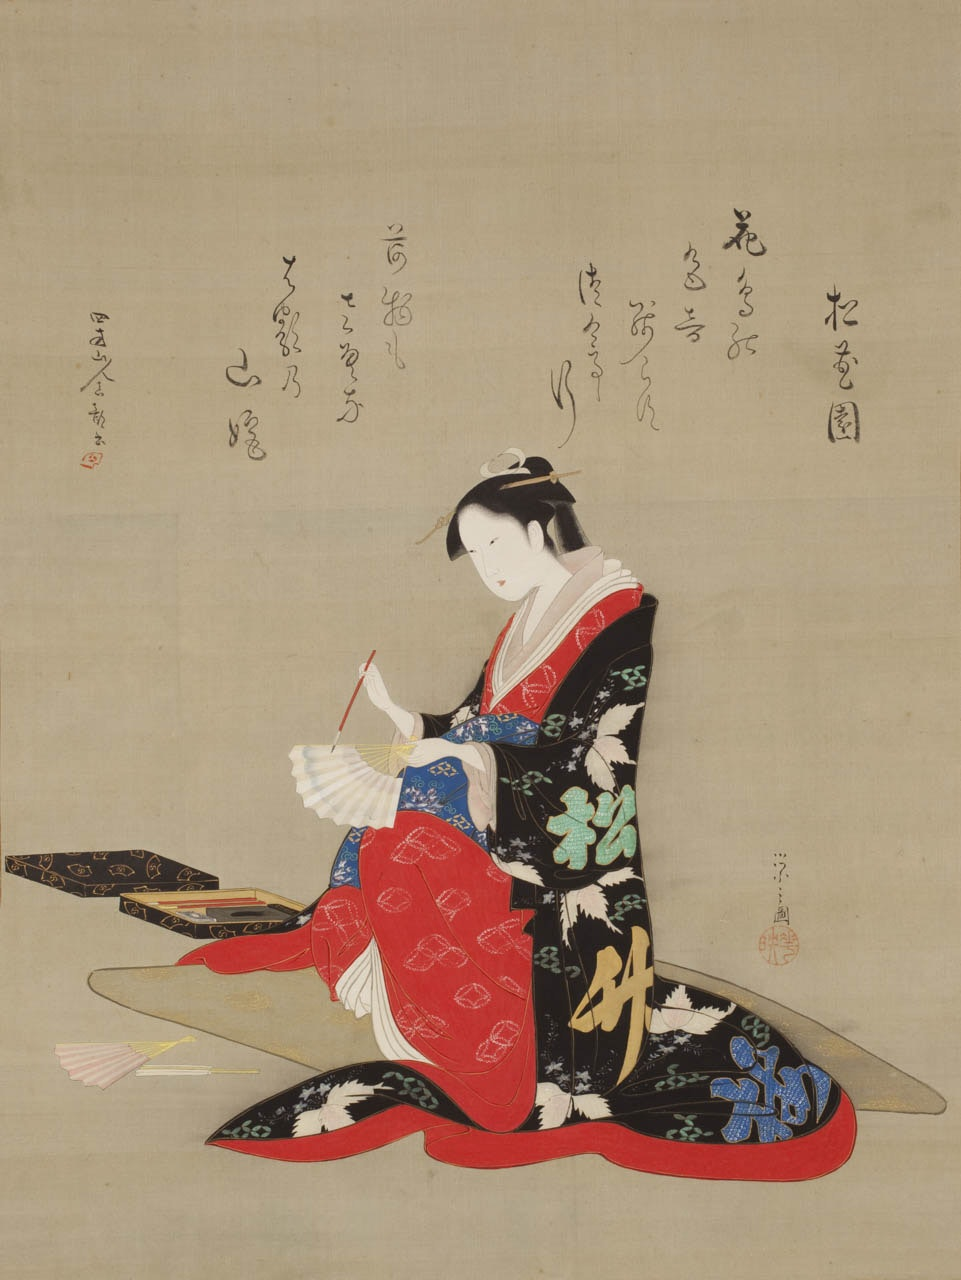 A Japanese woman sits, her luxuriously decorated robes spread out around her, writing a poem.